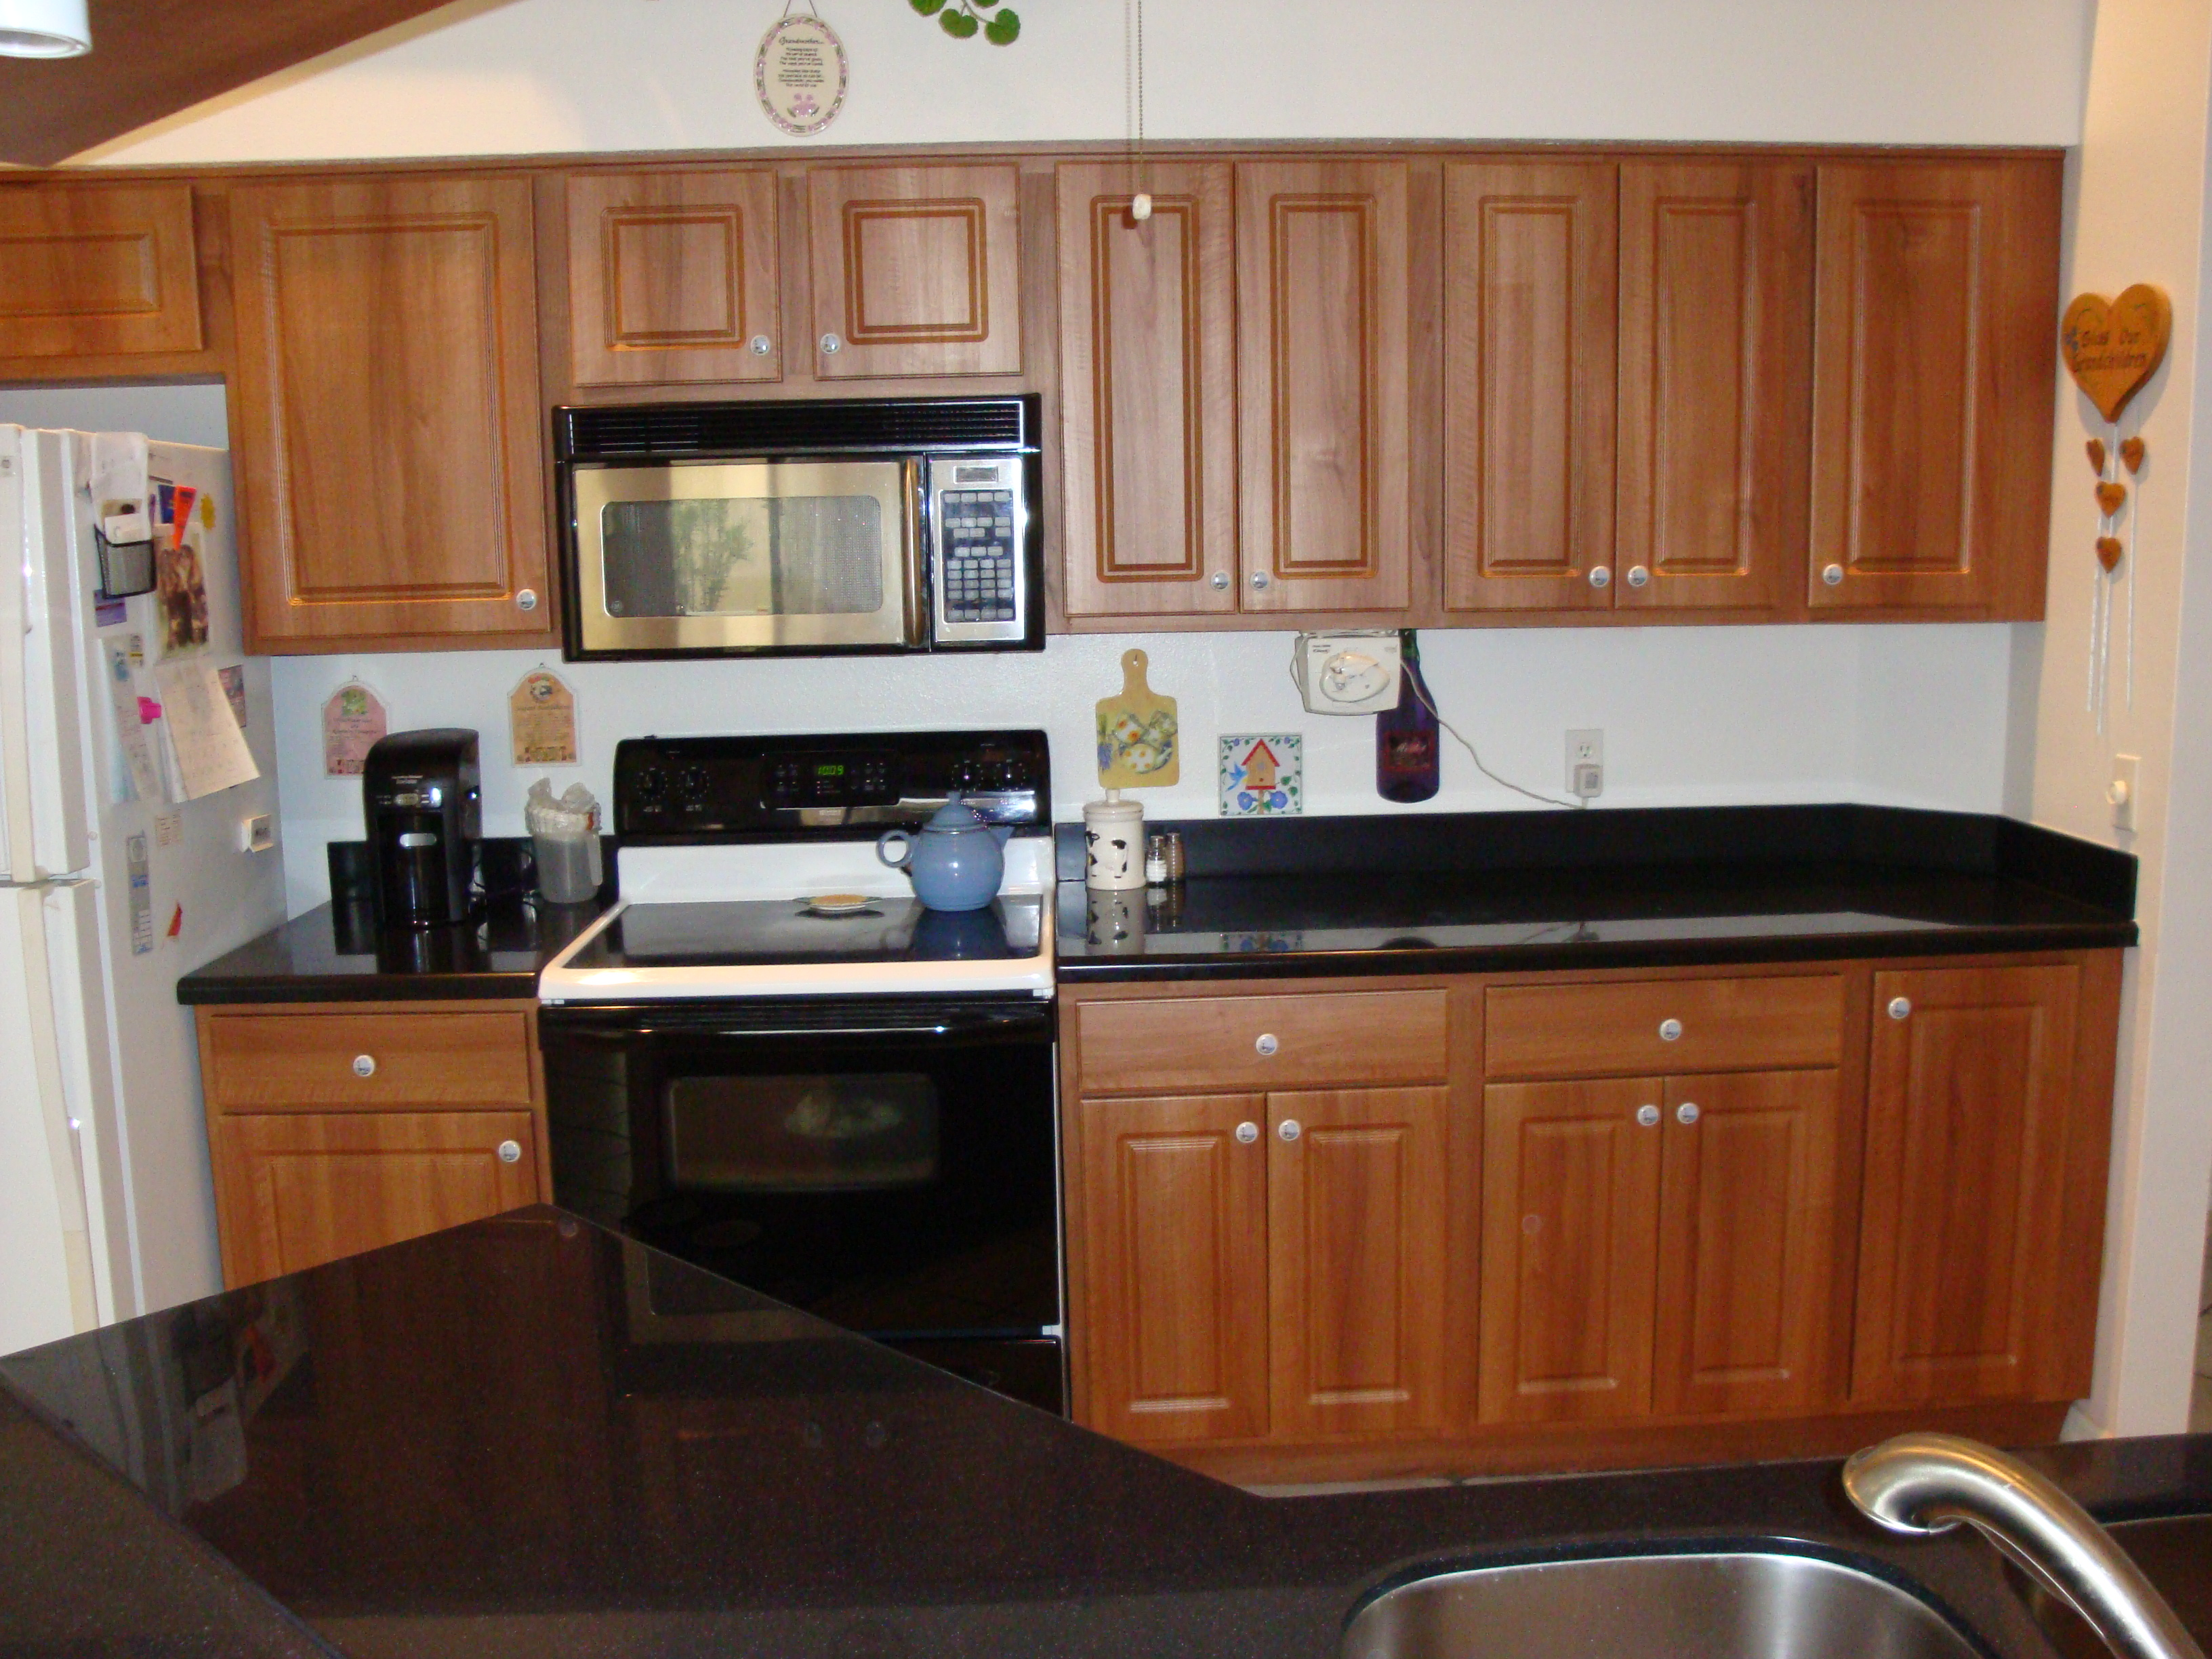 New Countertop Cabinet Refacing Viera Florida